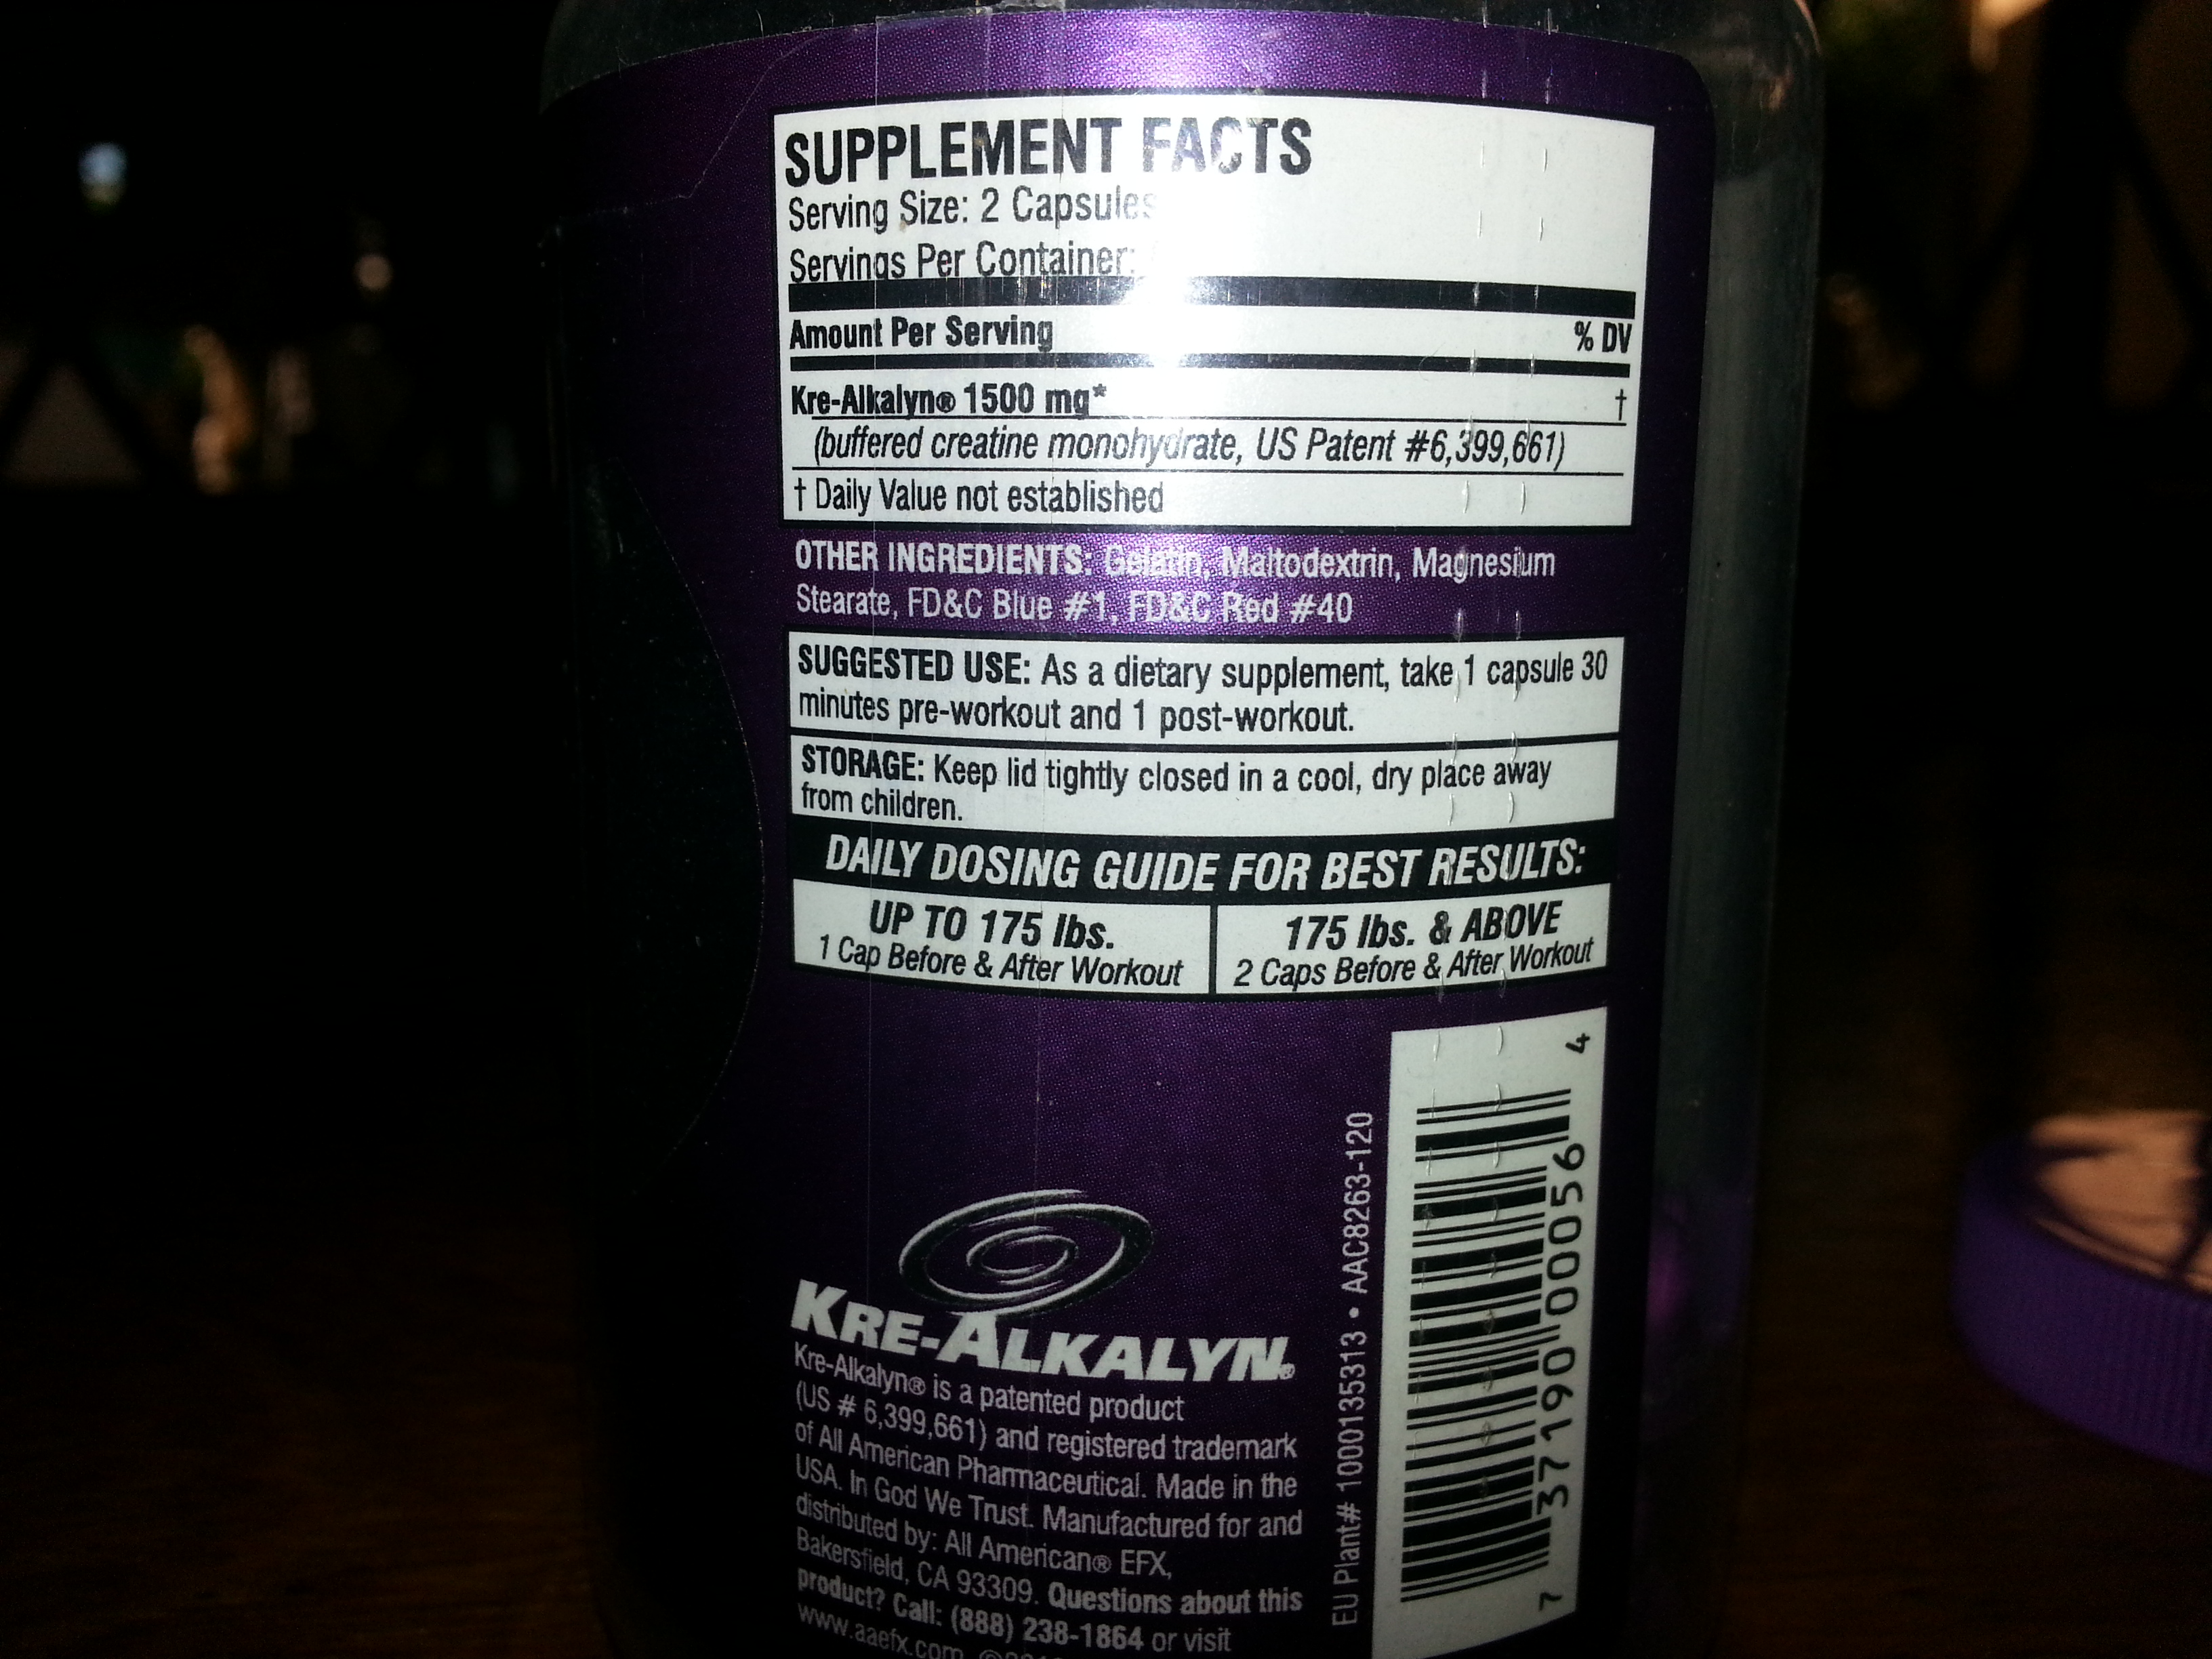 All American Kre Alkaline Supplement Facts.